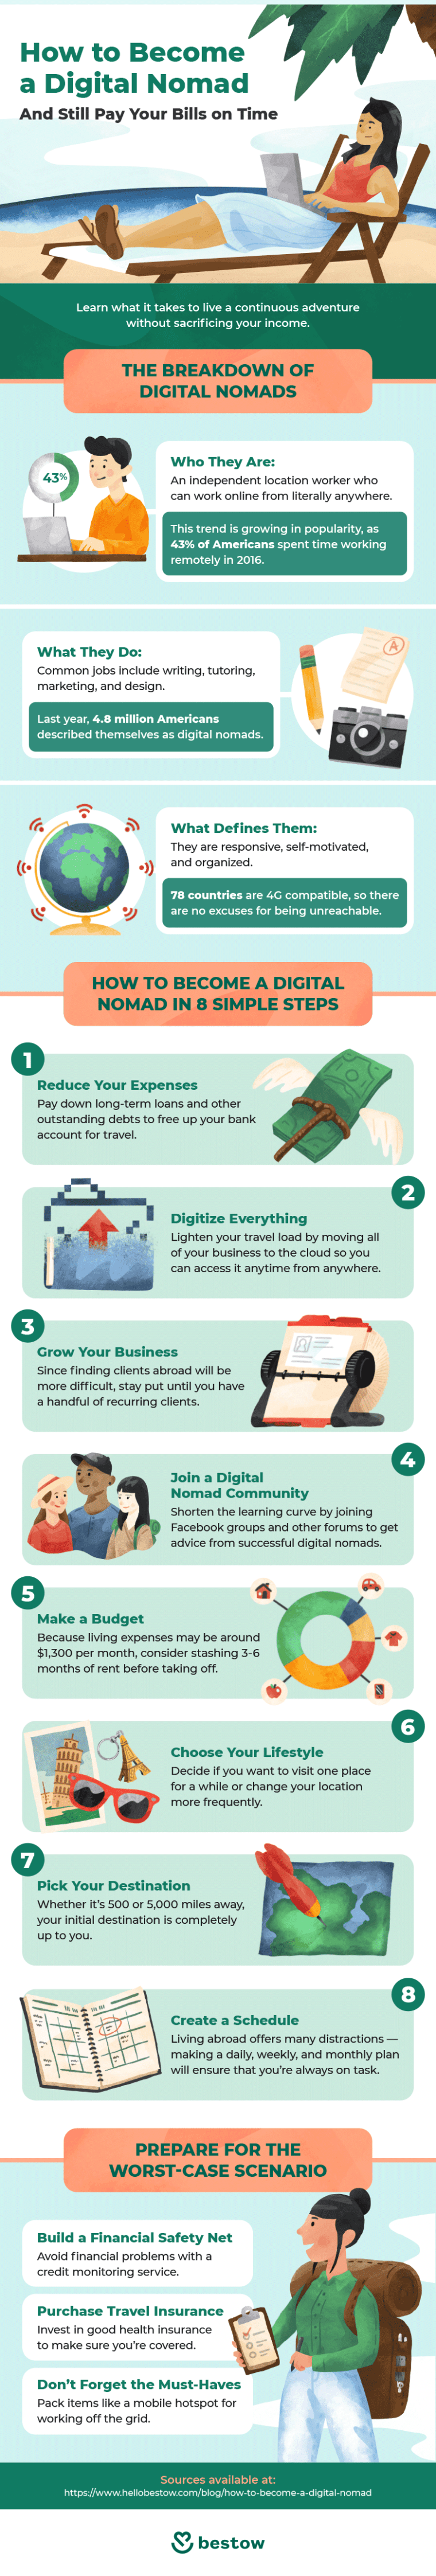 Infographic: How to become a digital nomad